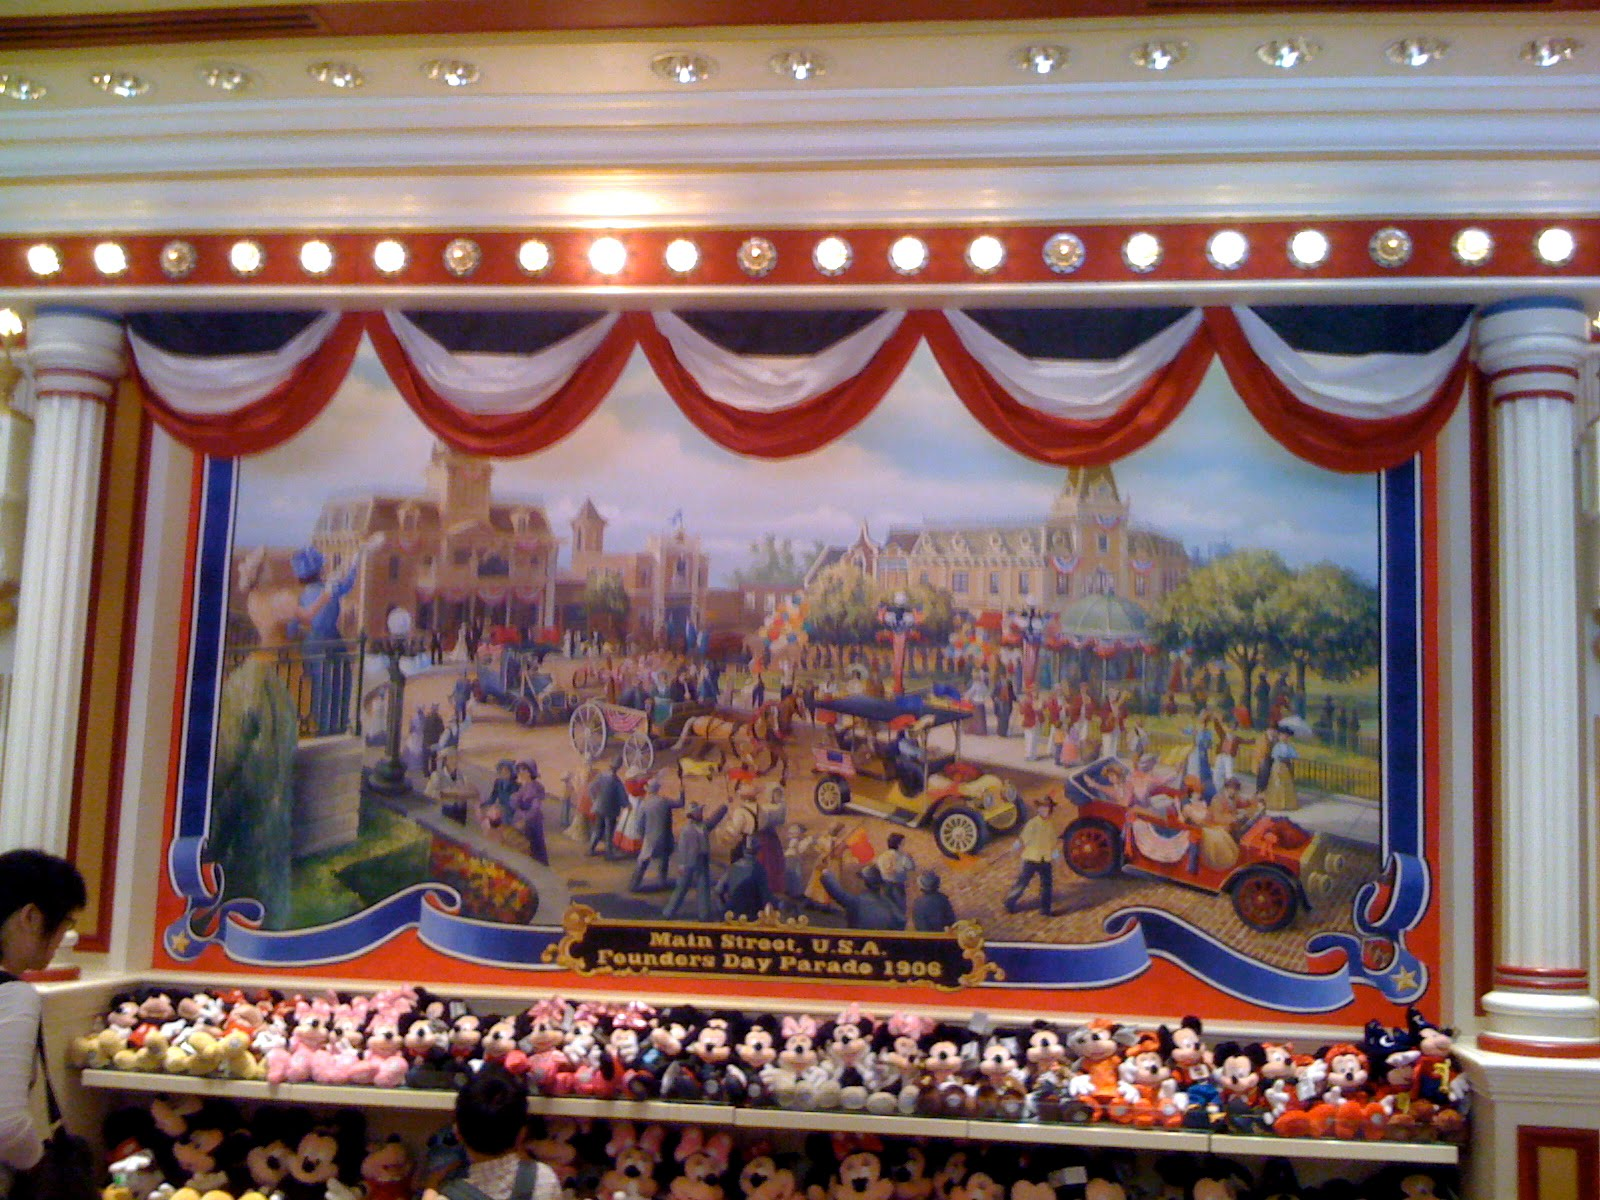 The golden mickeys hong kong disneyland 39 s main street for Disneyland mural